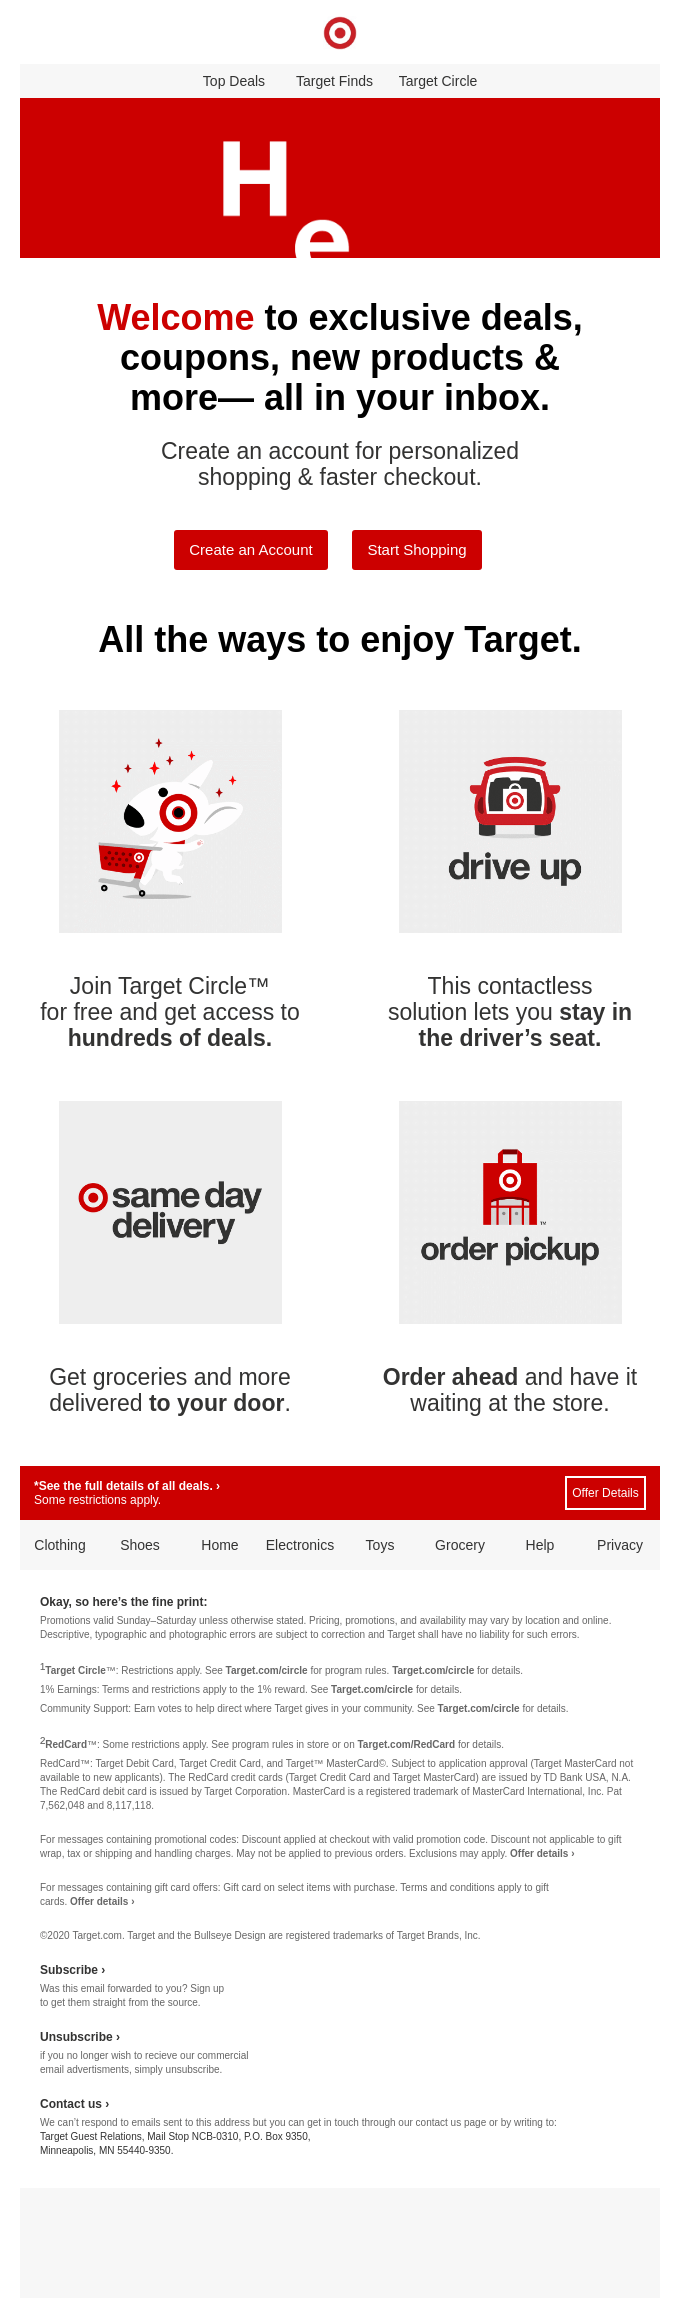 Target deals welcome email